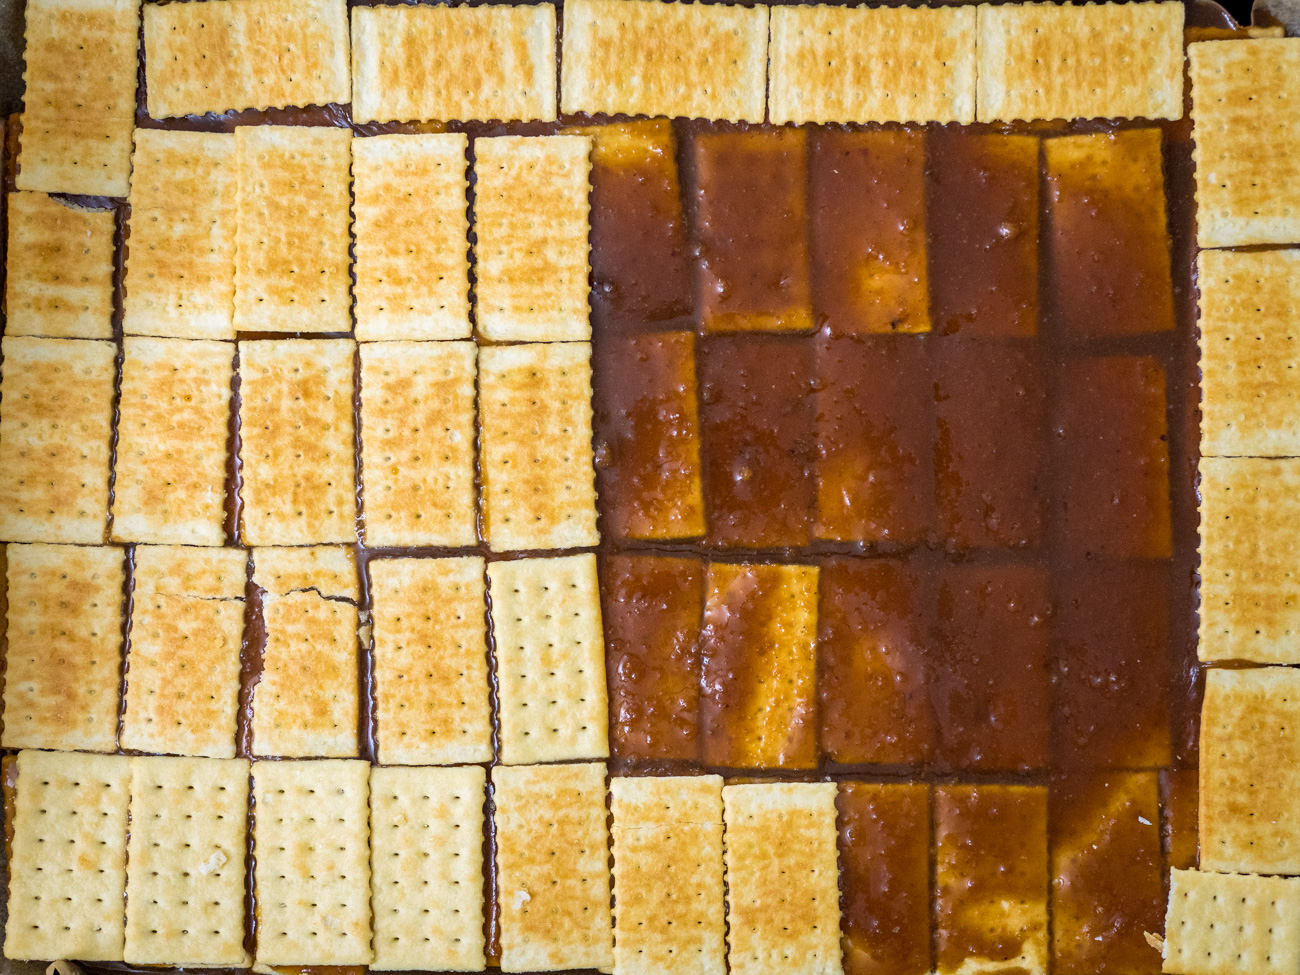 Pour the rest of the caramel over the second layer of crackers, and then add a final layer of crackers. Refrigerate while working on the chocolate topping.